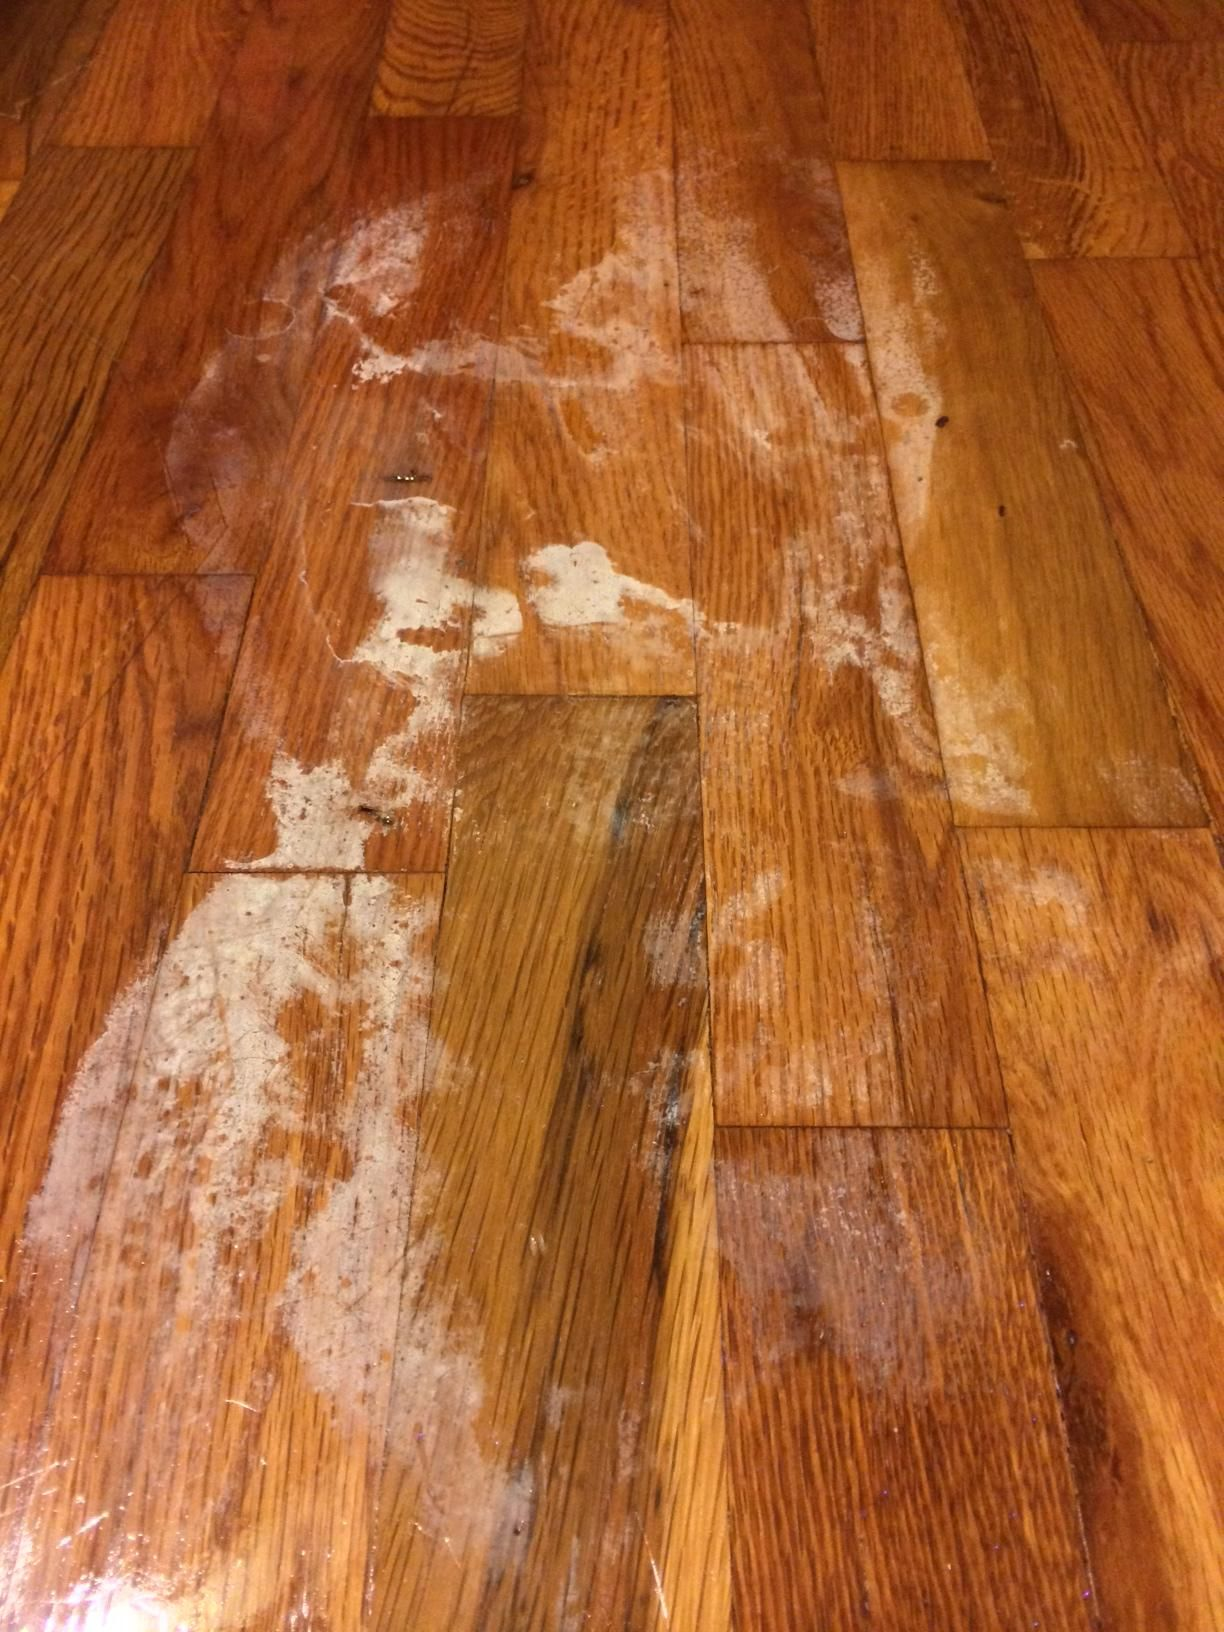 How To Get Nail Polish Remover Off Wood Floor